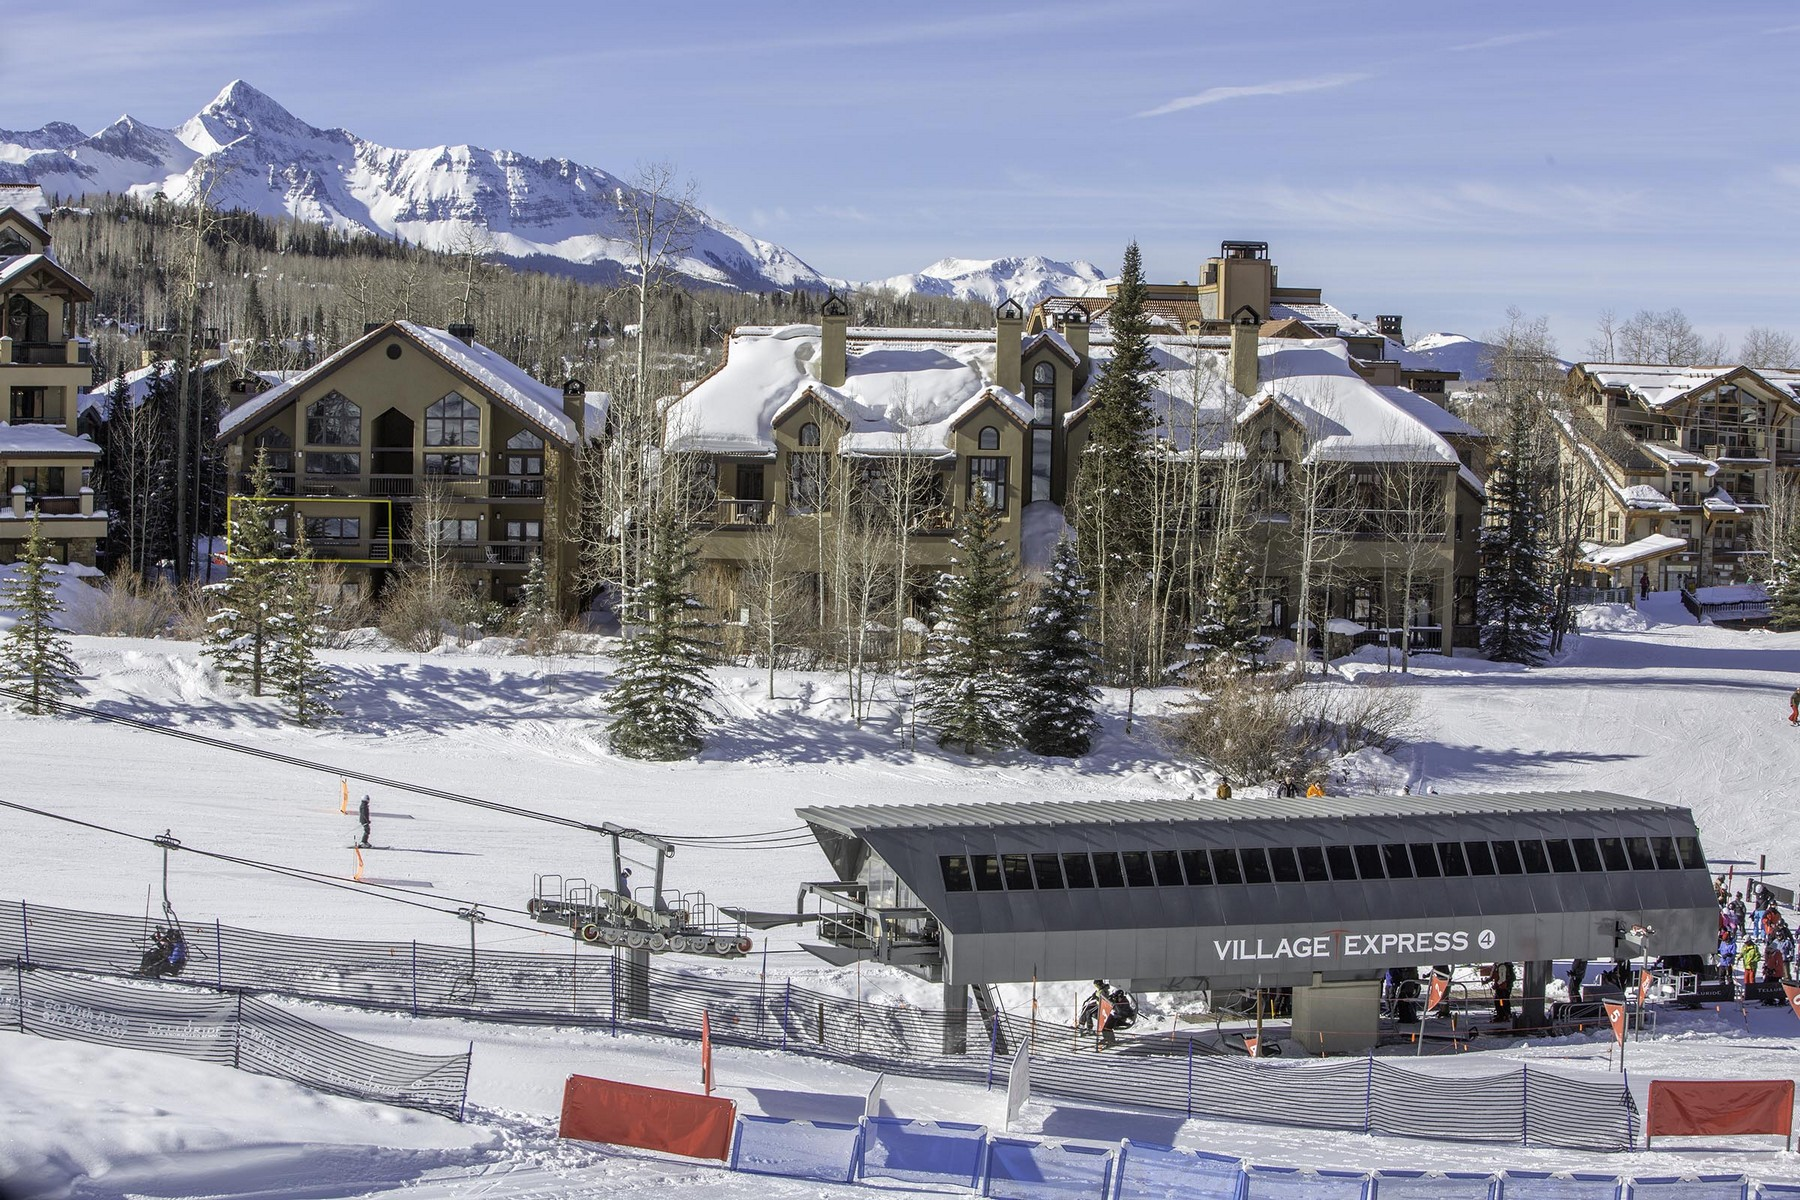 Condominium for Sale at Kayenta Phase II Unit 12 129 Lost Creek Lane, Unit 12 Mountain Village, Telluride, Colorado, 81435 United States